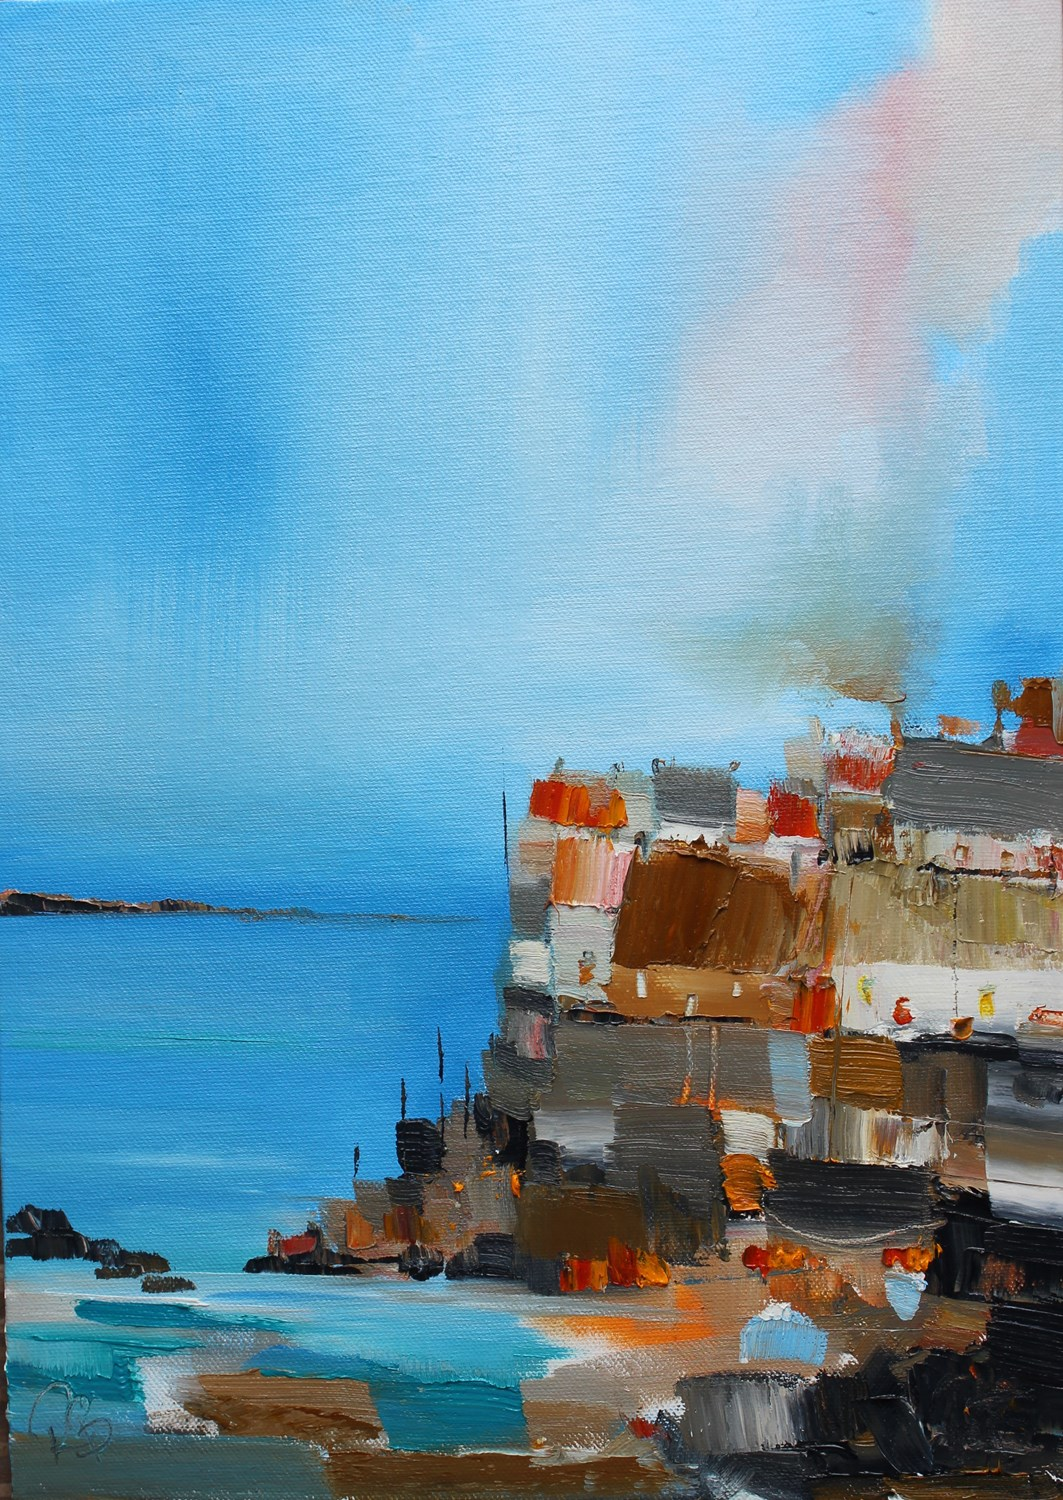 'Homes with a View - available to buy at https://www.britishcontemporary.art/rosanne-barr/' by artist Rosanne Barr